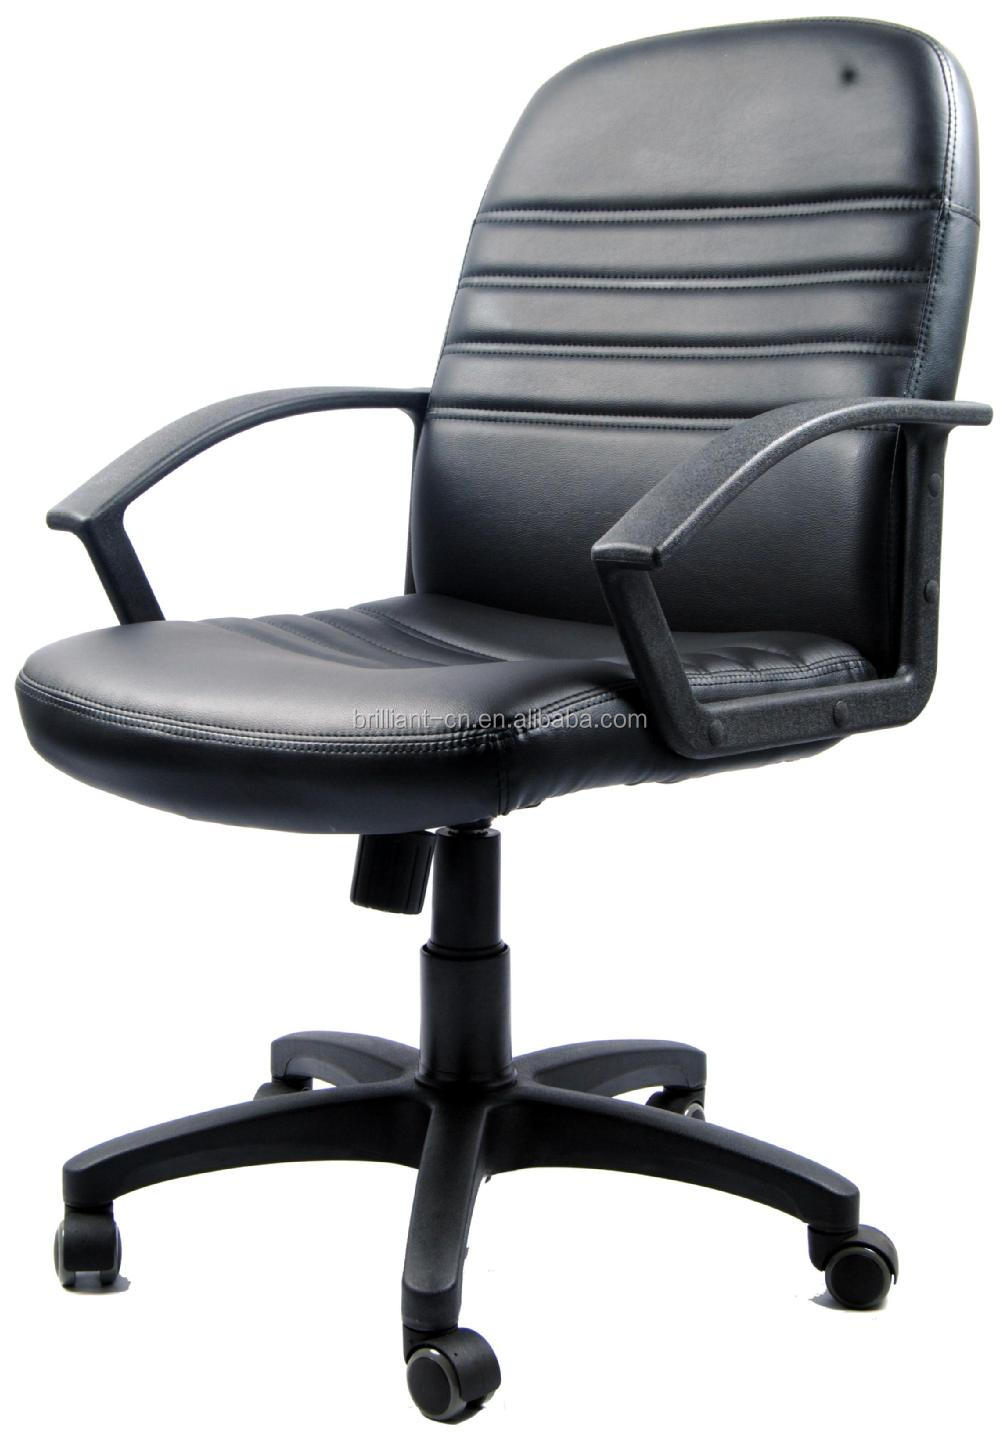 Osim massage chair price - Charcoal Supplier In Uae Osim Massage Chair Price Office Counter Furniture Bf 8808b 1